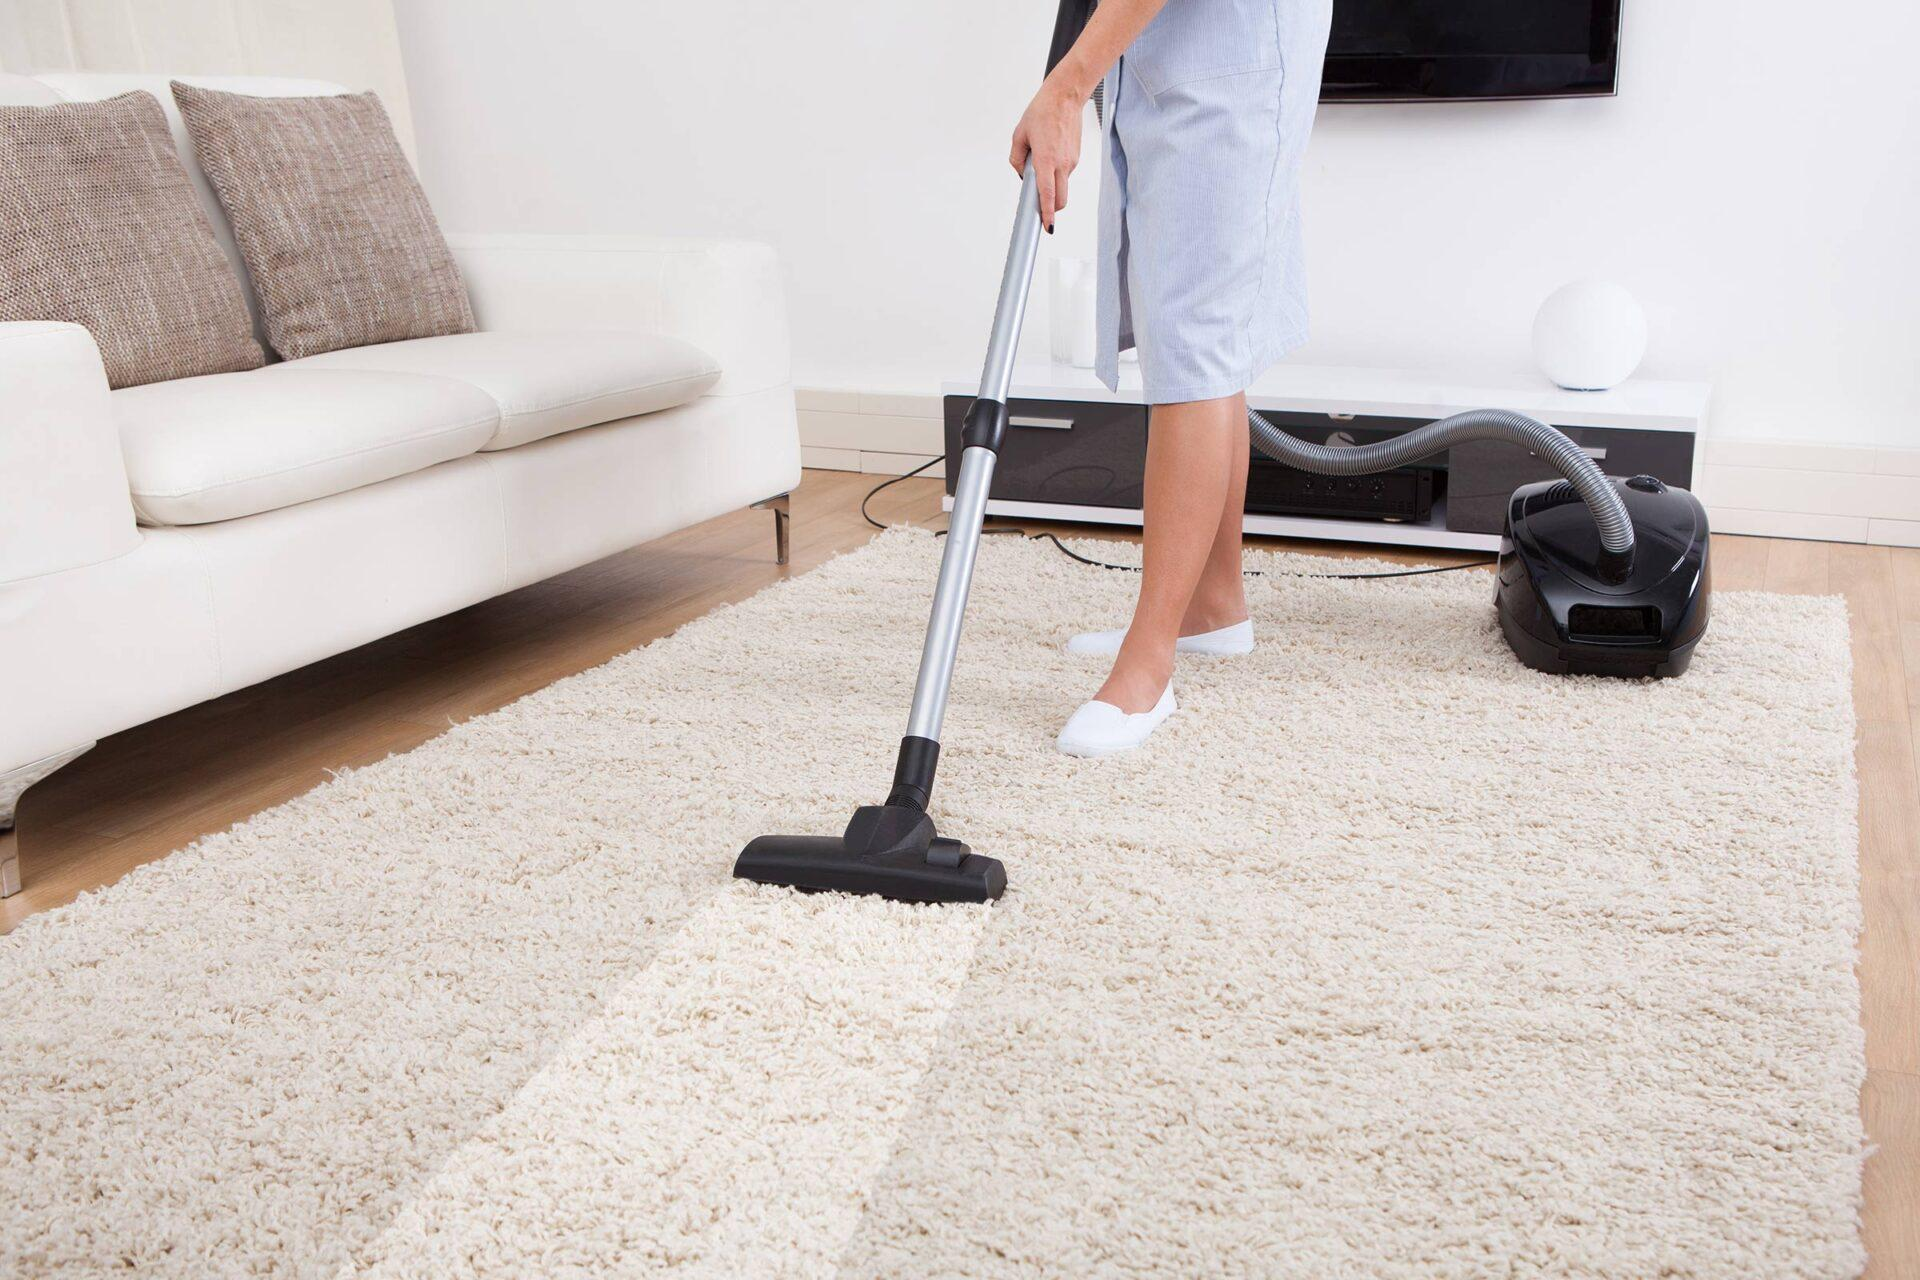 woman vaccum cleaning carpet